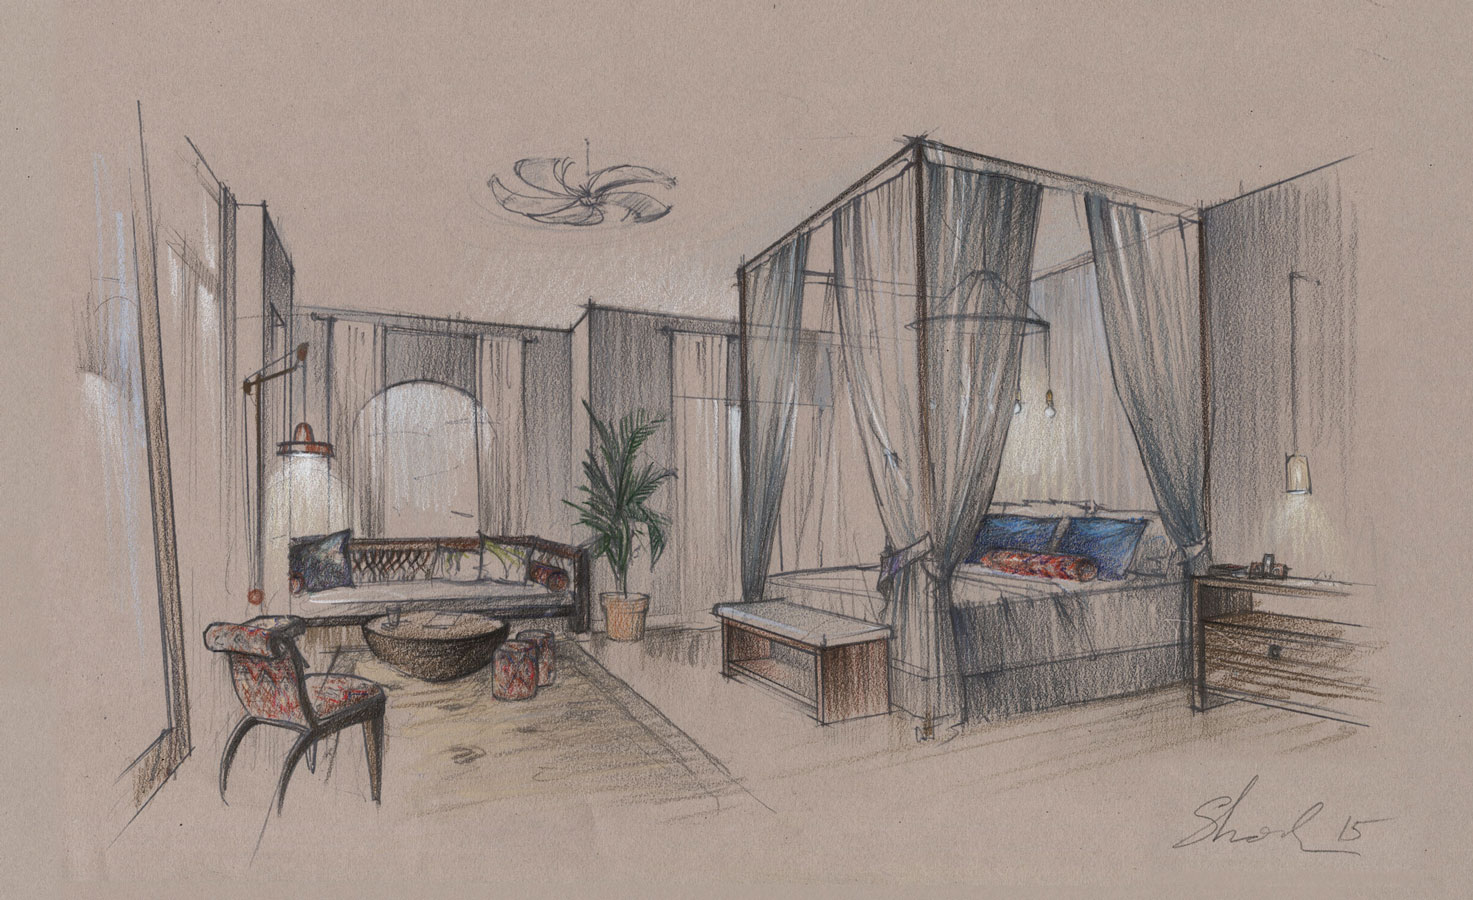 Architectural graphics renderings Colored Pencils freehand concept sketch architectural illustranion hand drawing hotel room Architecture visualization artist designer Shalum Shalumov